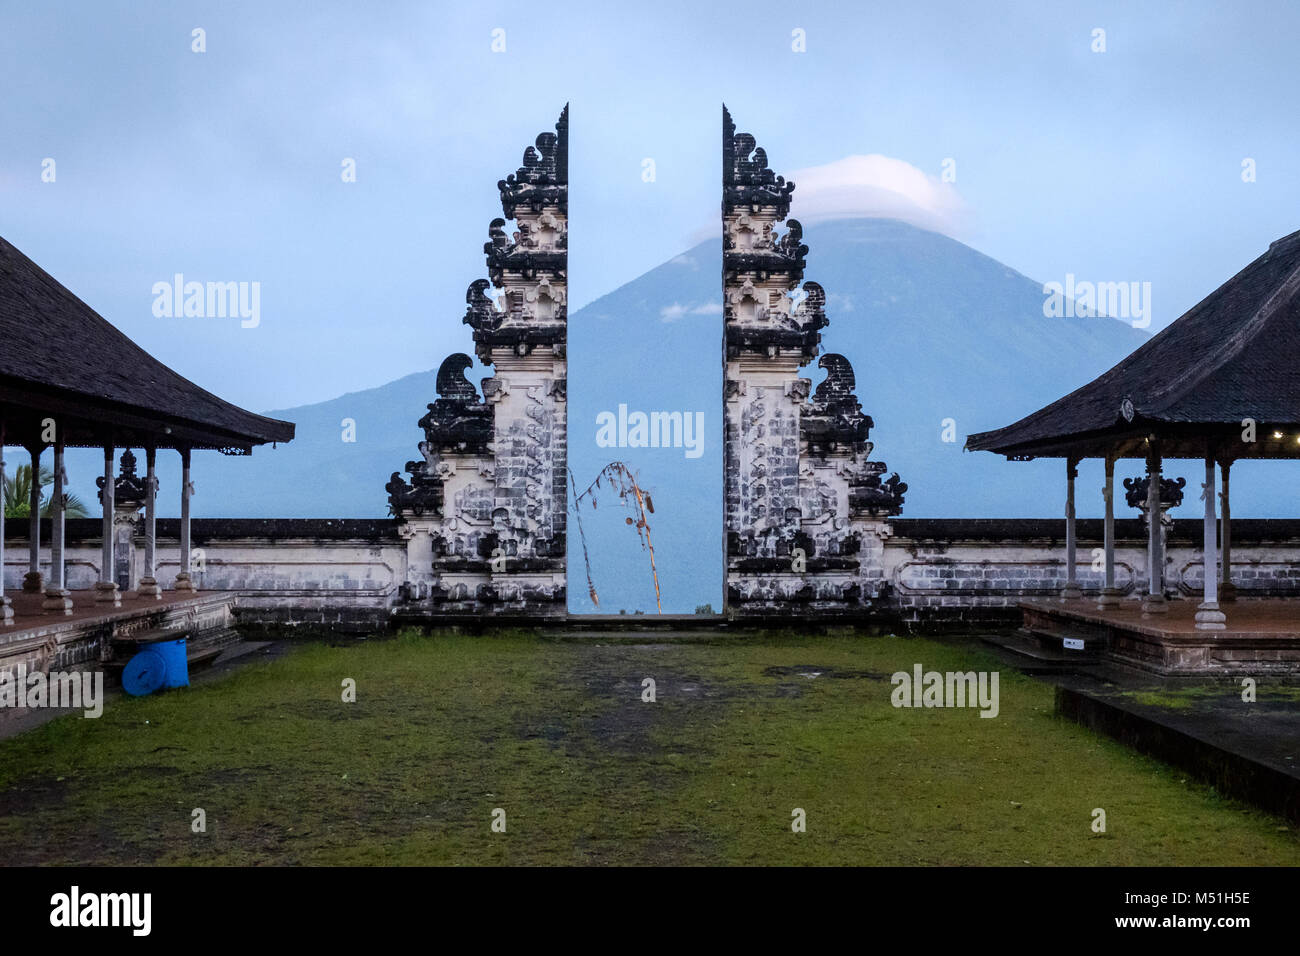 Gunung Agung volcano and 'candi bentar' (a traditional Balinese gate) seen from the outer sanctum at Pura - Stock Image